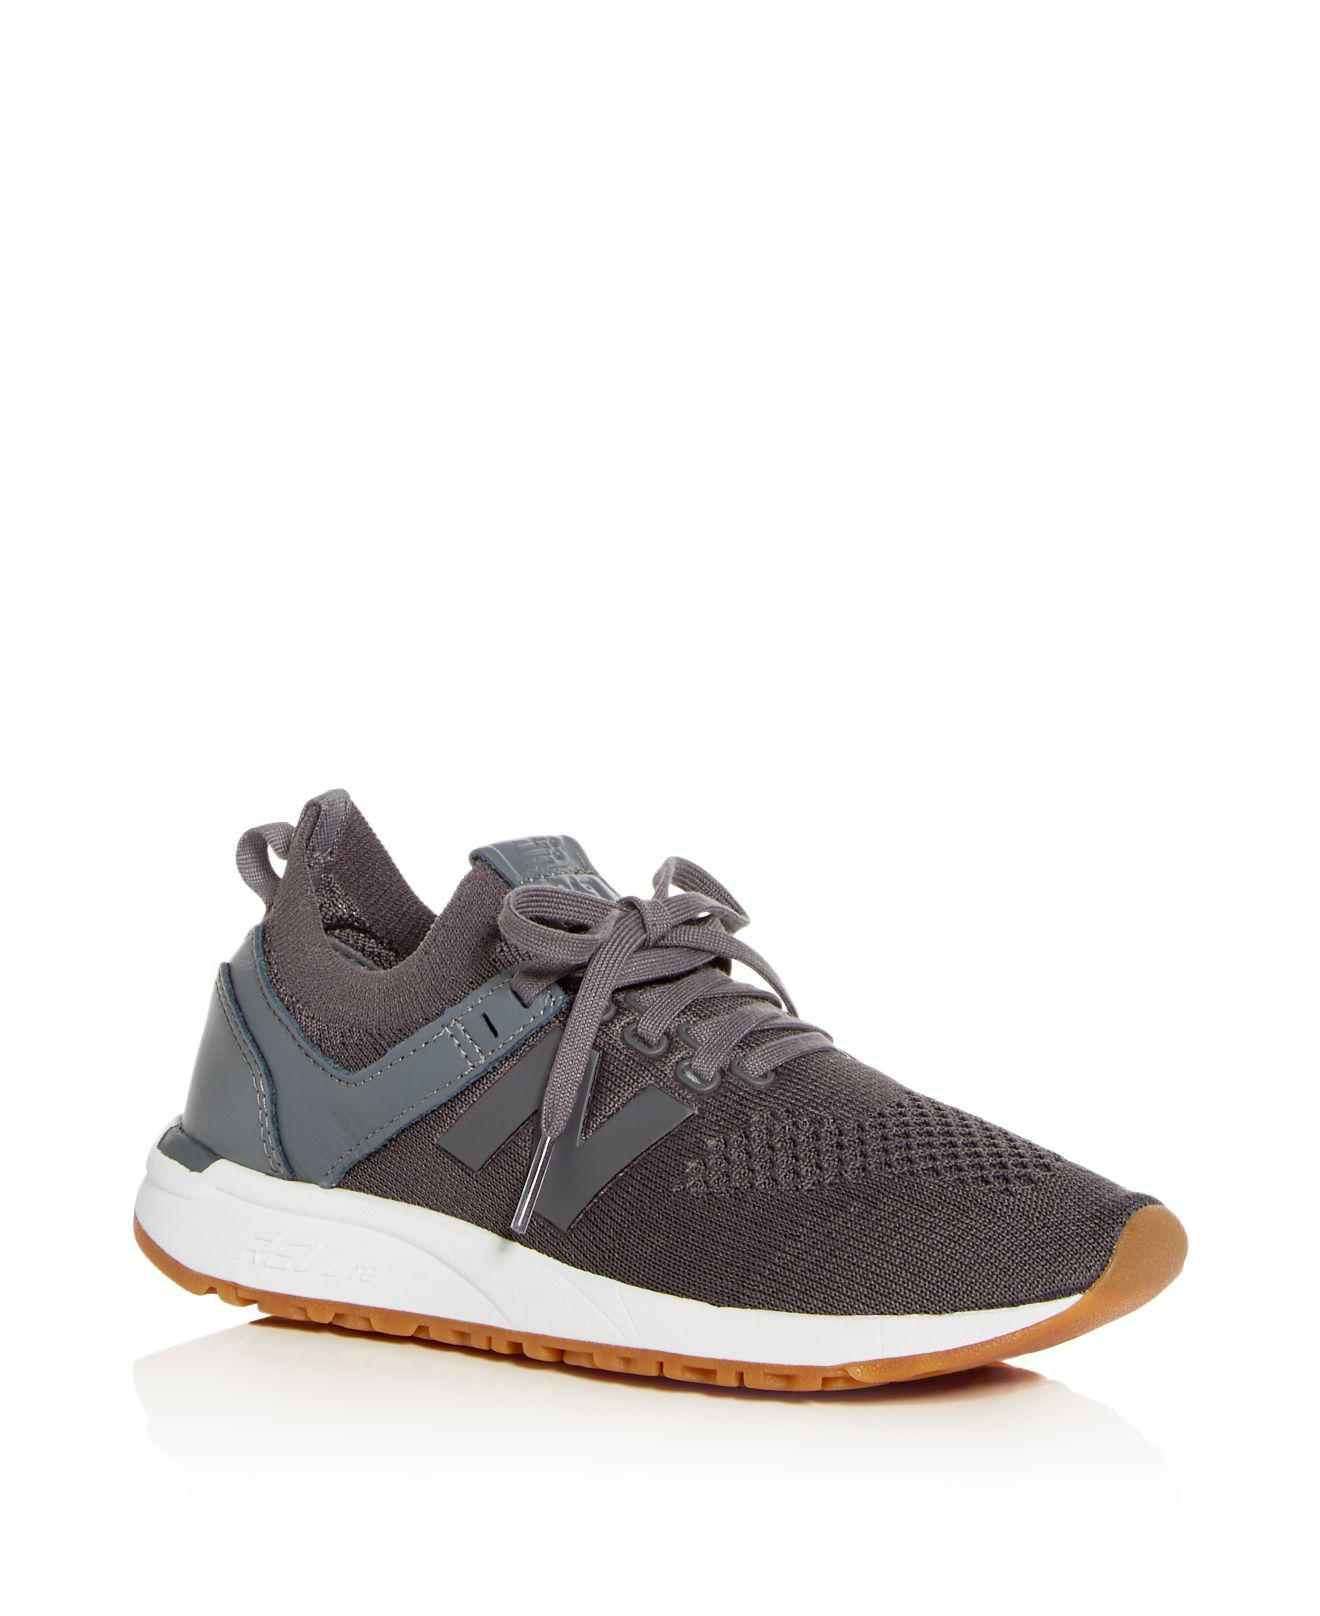 New Balance Women's Deconstructed 247 Knit Lace Up Sneakers fiCDfhF